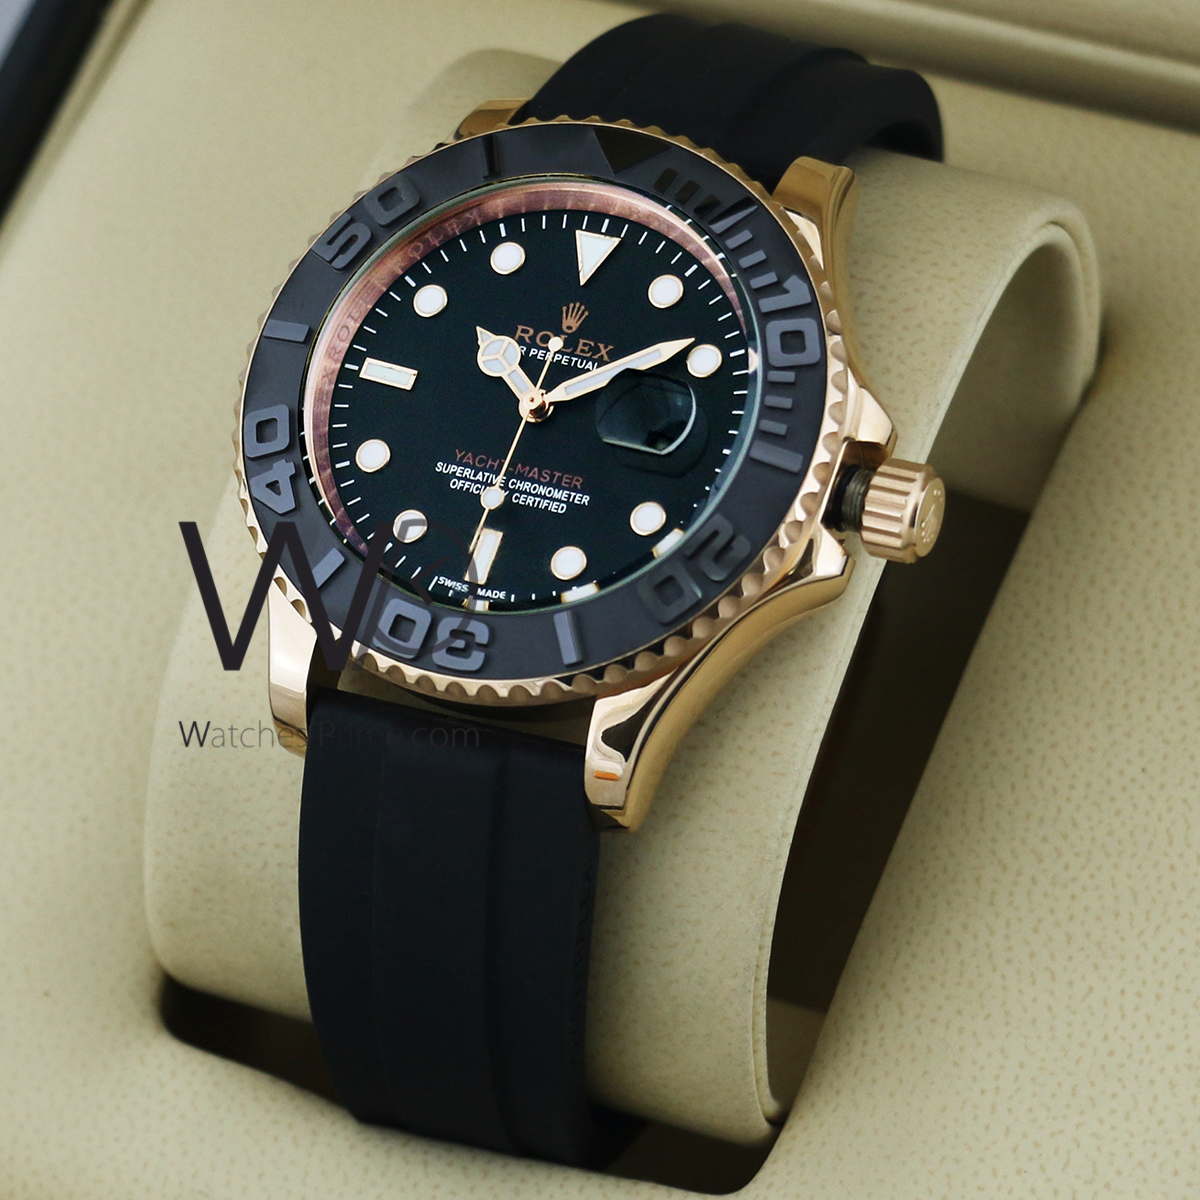 Rolex Rubber Rolex Yacht Master Watch Black With Rubber Black Belt